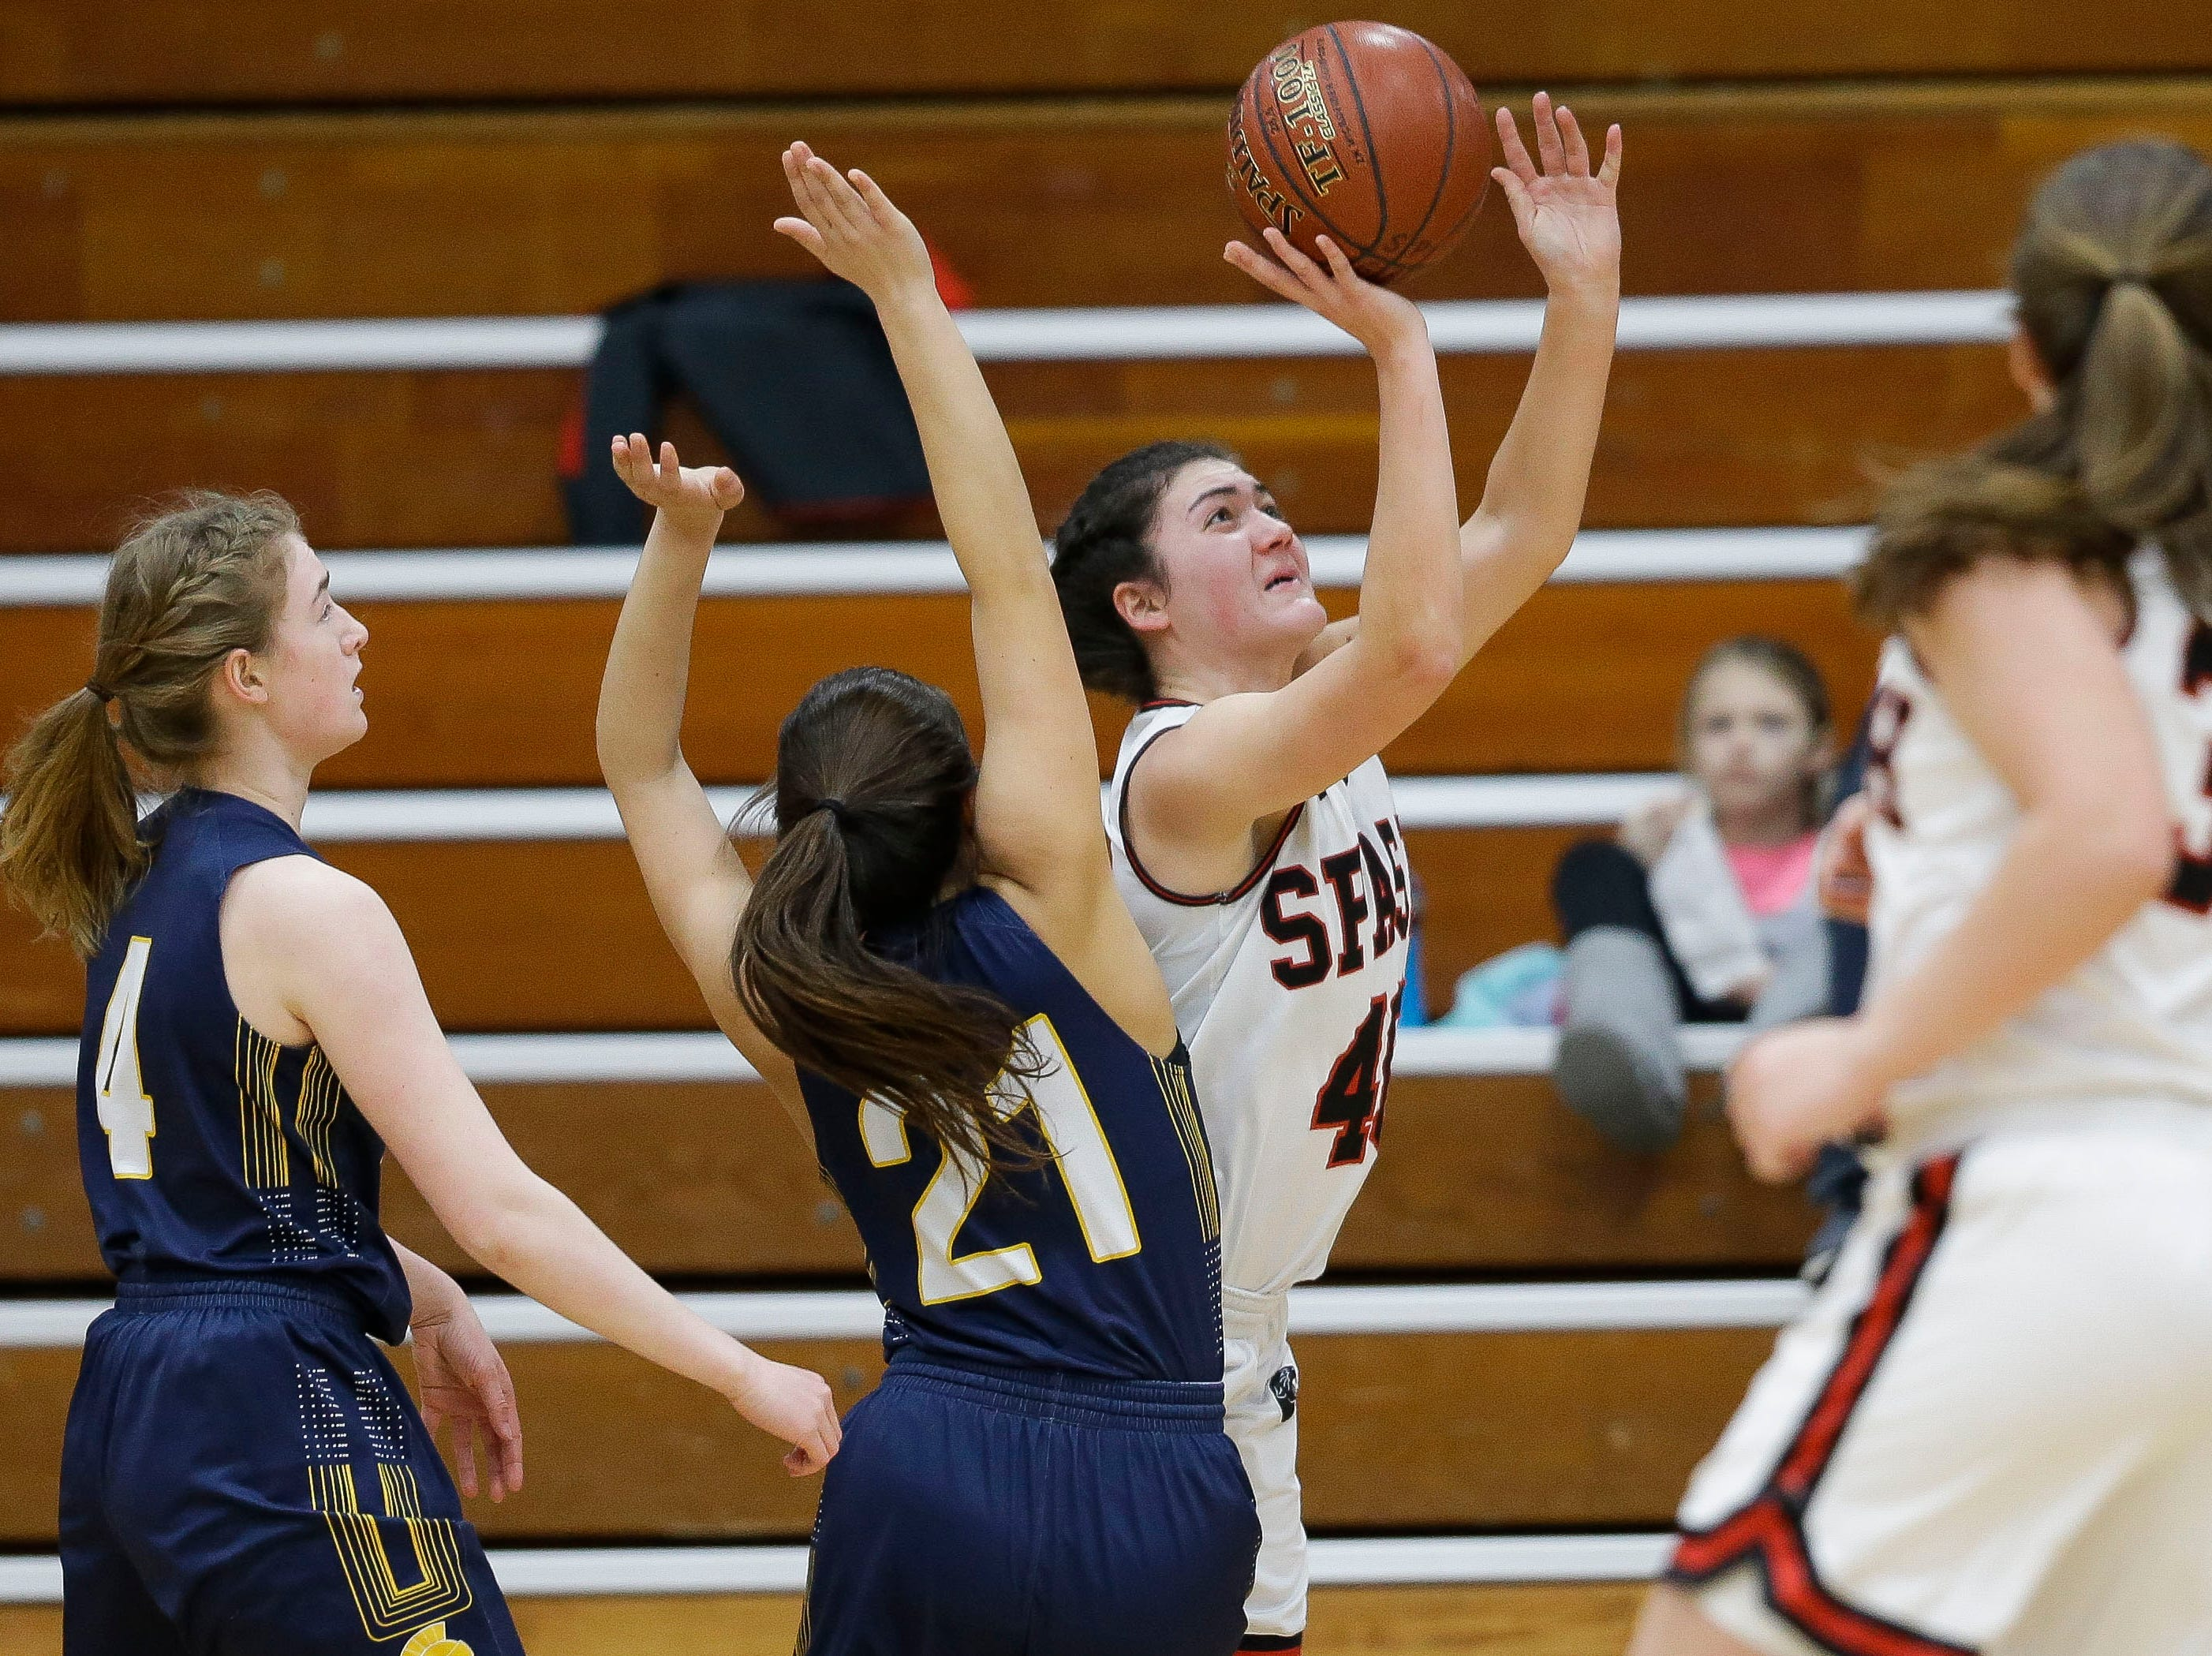 SPASH's Leah Earnest (40) puts up a shot against Wausau West on Thursday, February 14, 2019, at SPASH in Stevens Point, Wis.Tork Mason/USA TODAY NETWORK-Wisconsin